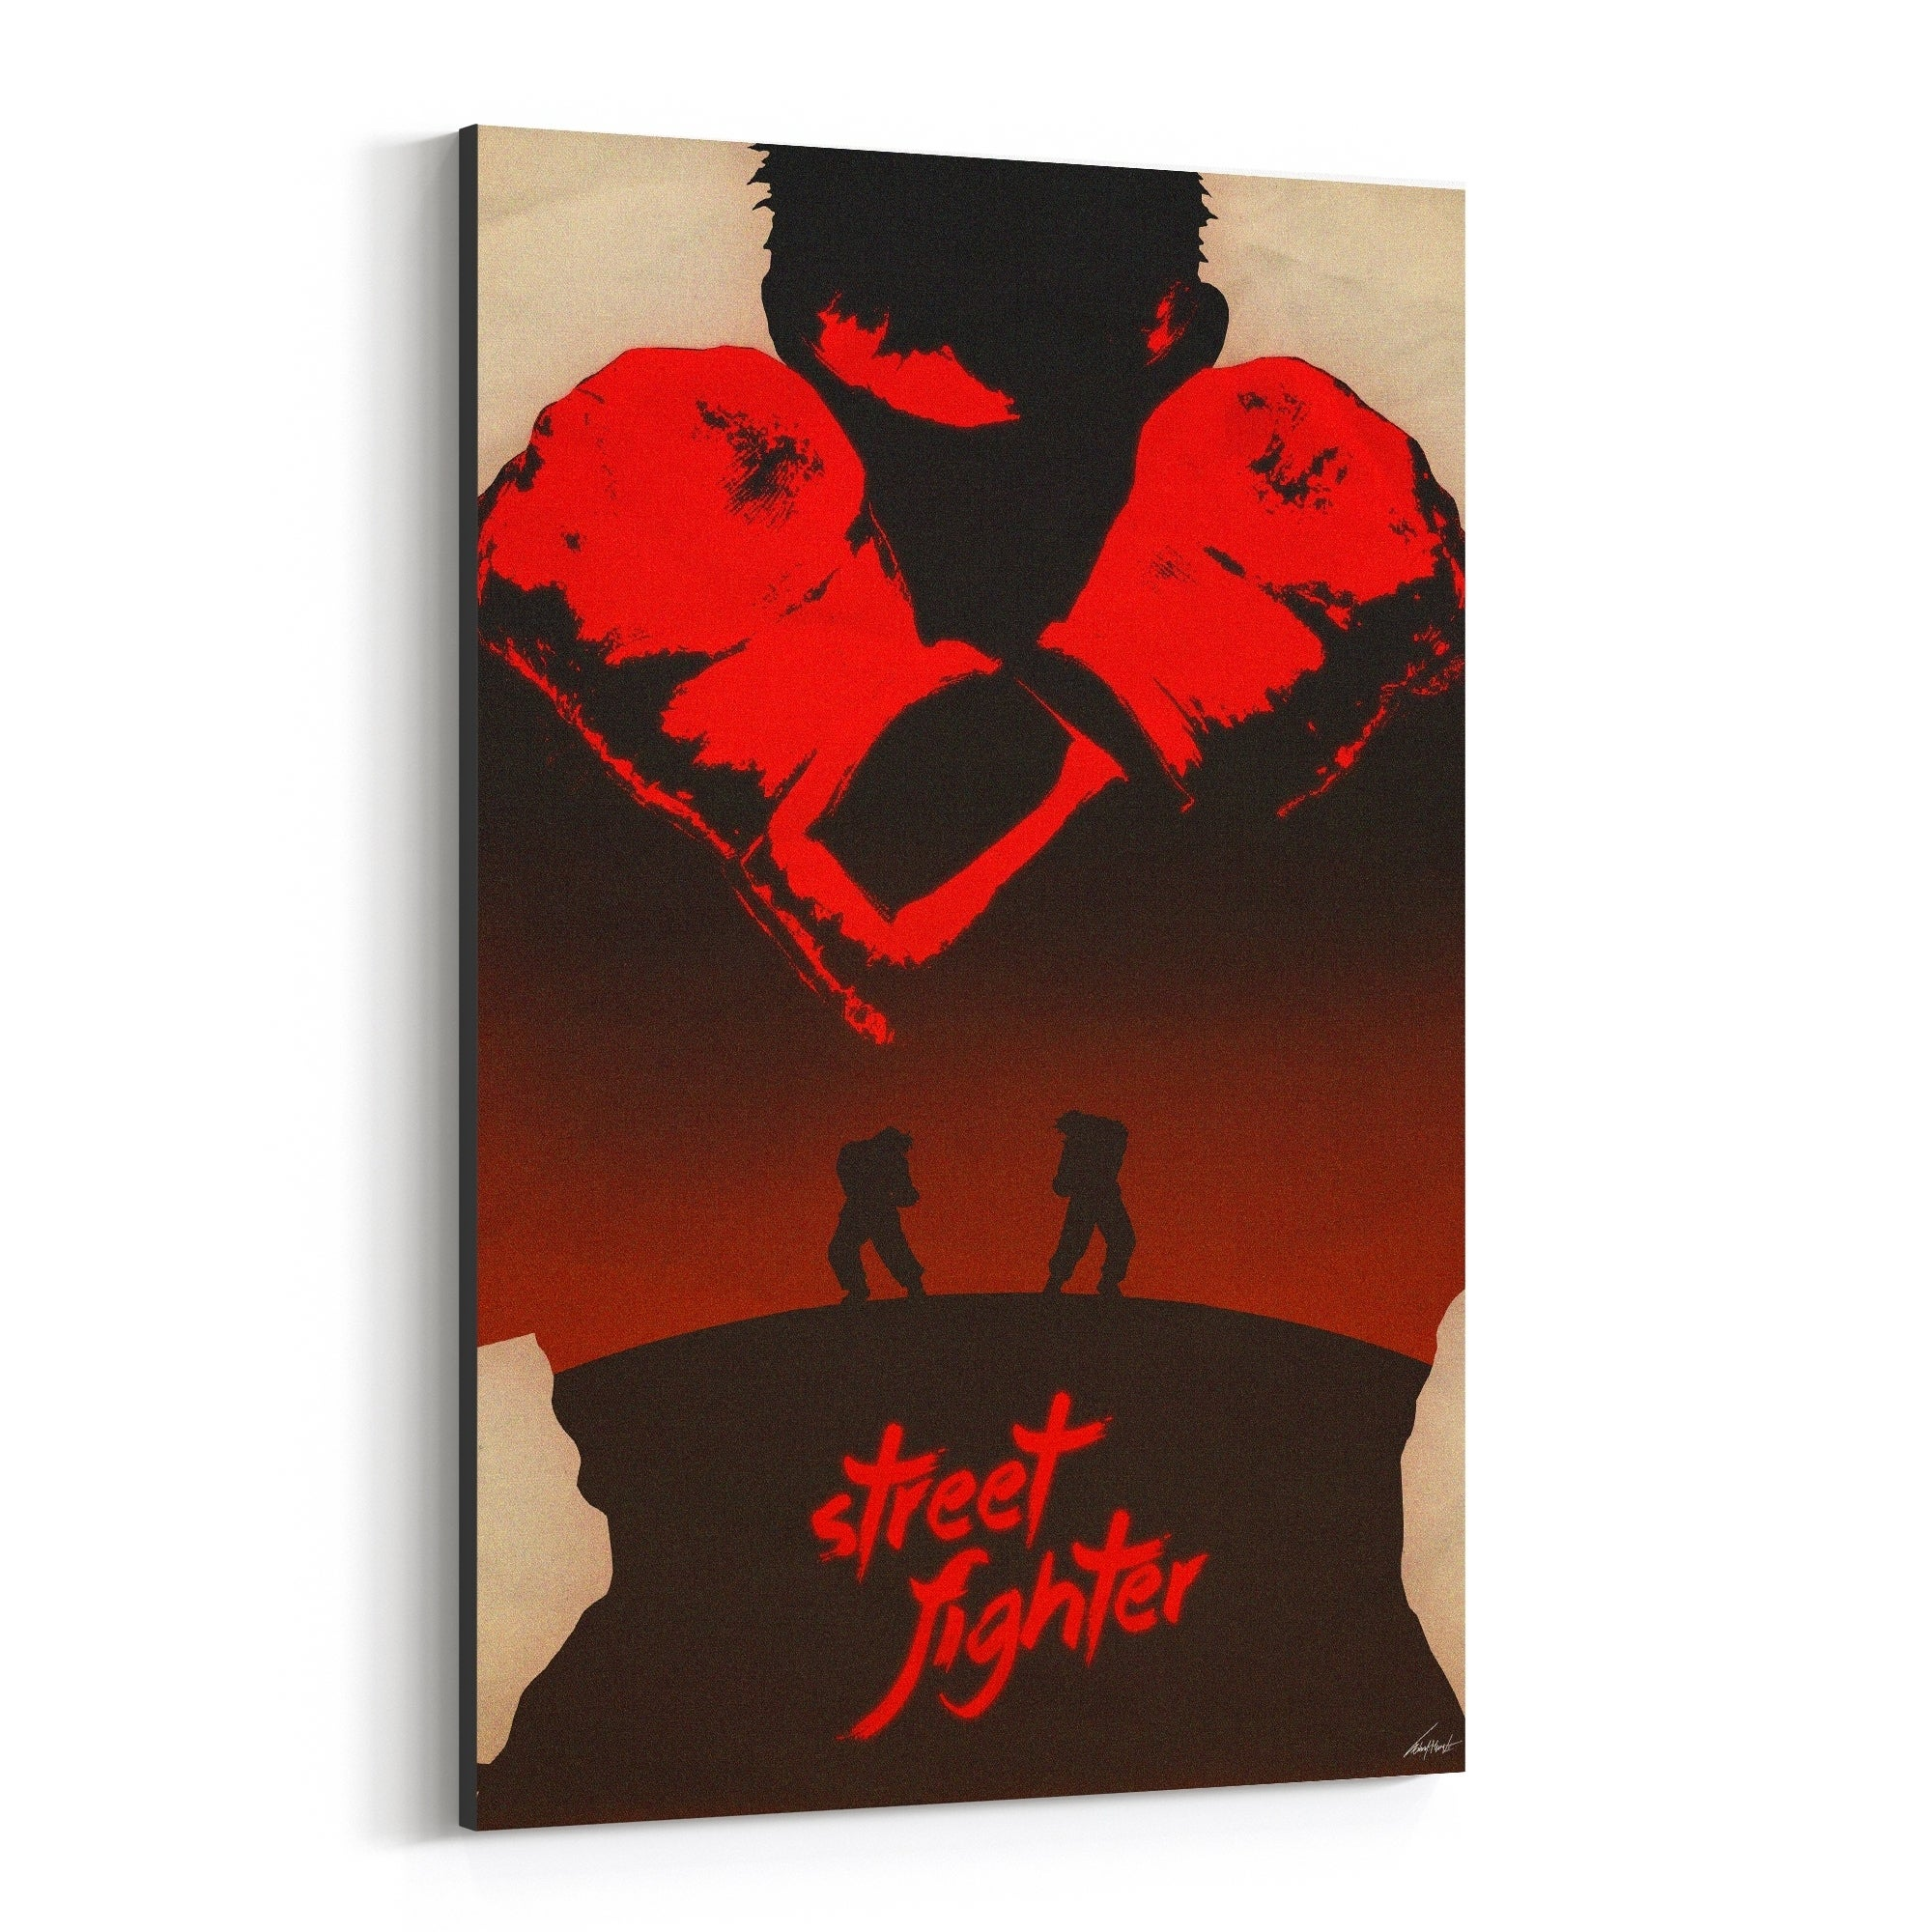 Shop Noir Gallery Street Fighter Video Game Culture Canvas Wall